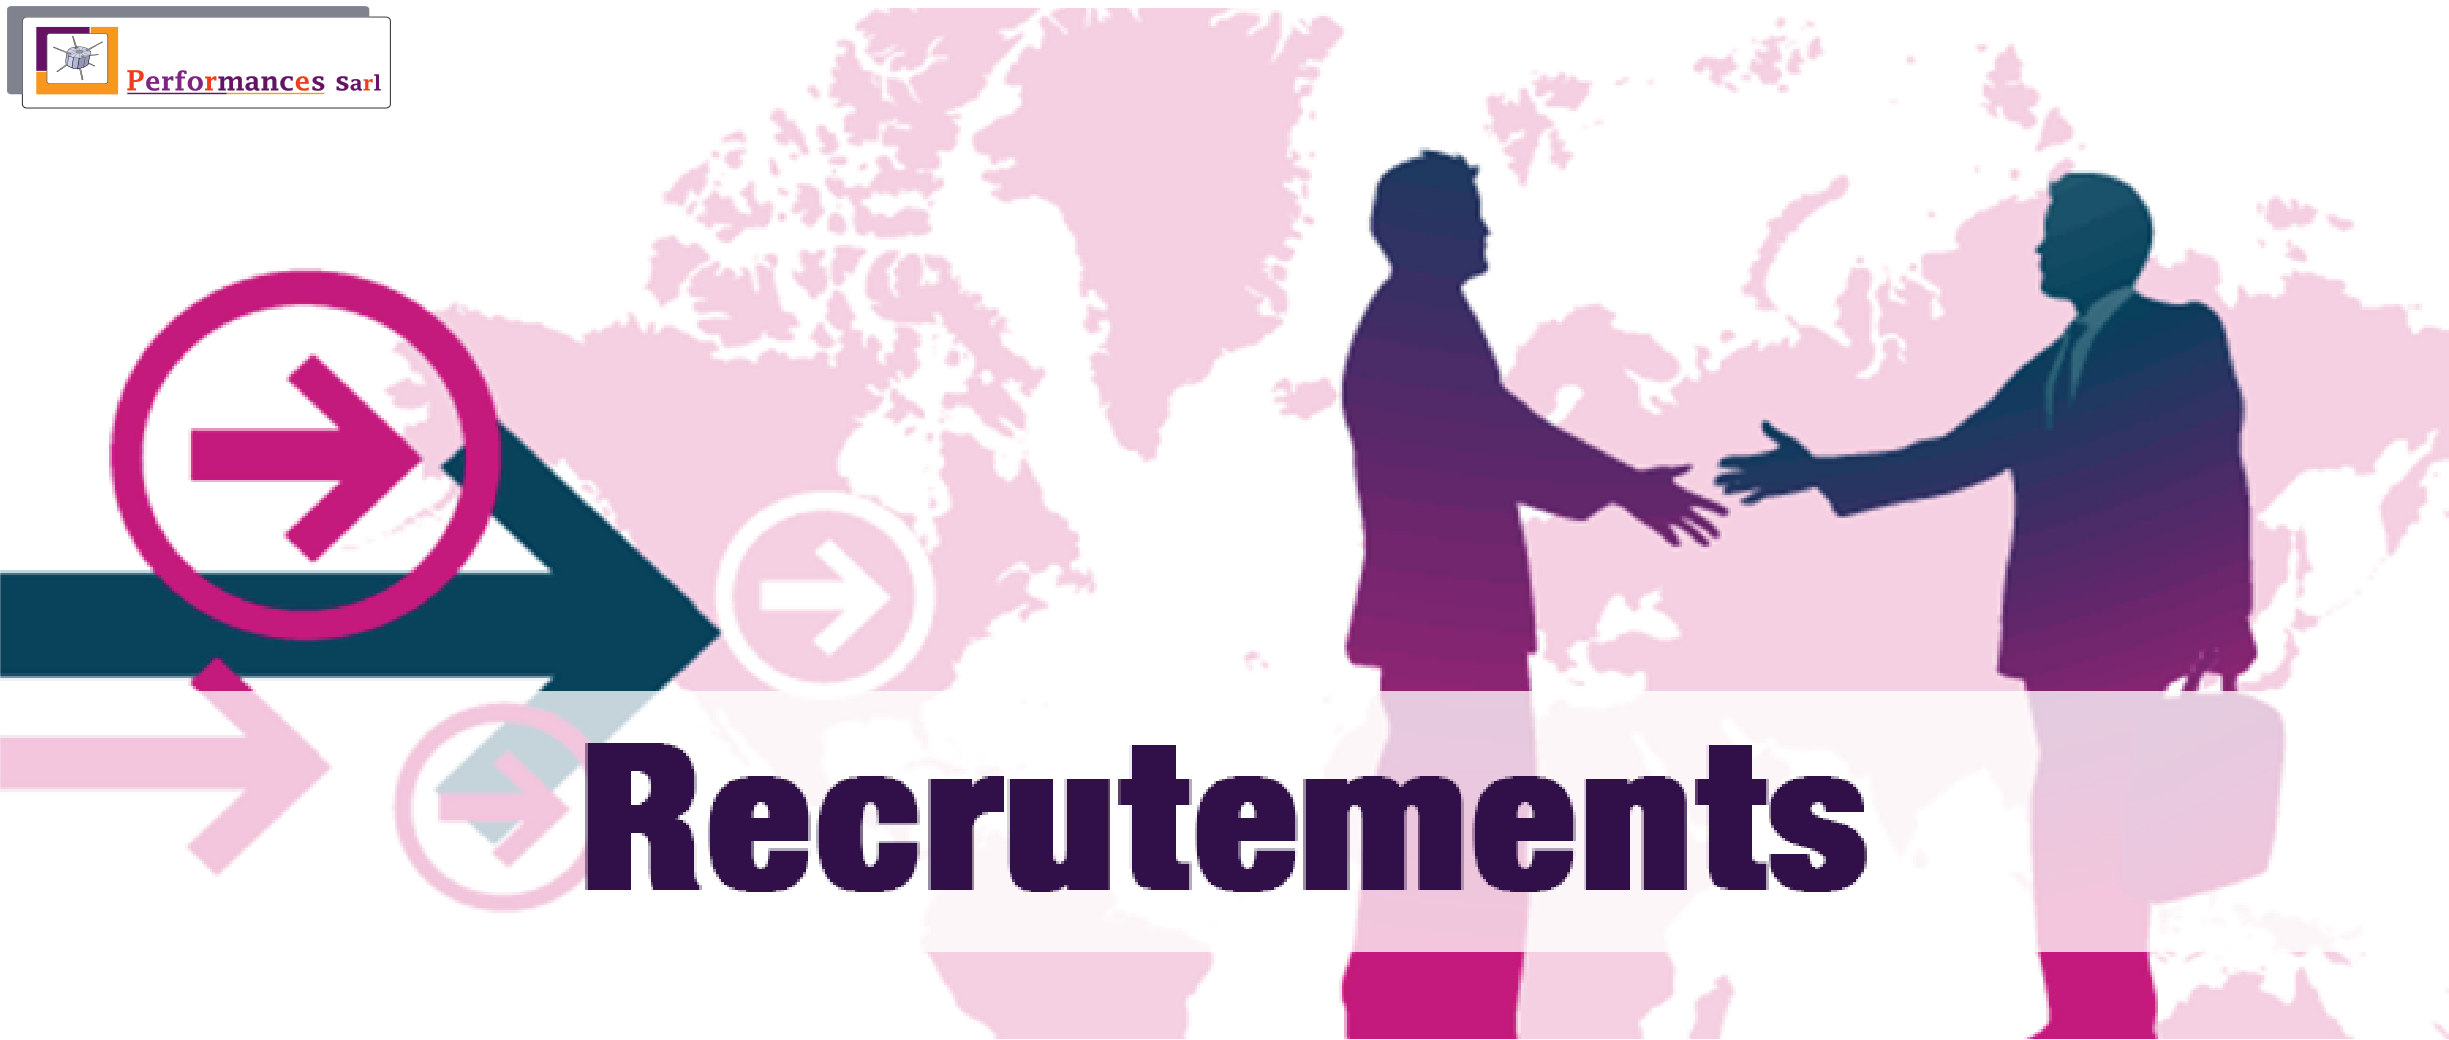 RECRUTEMENTS & PLACEMENTS